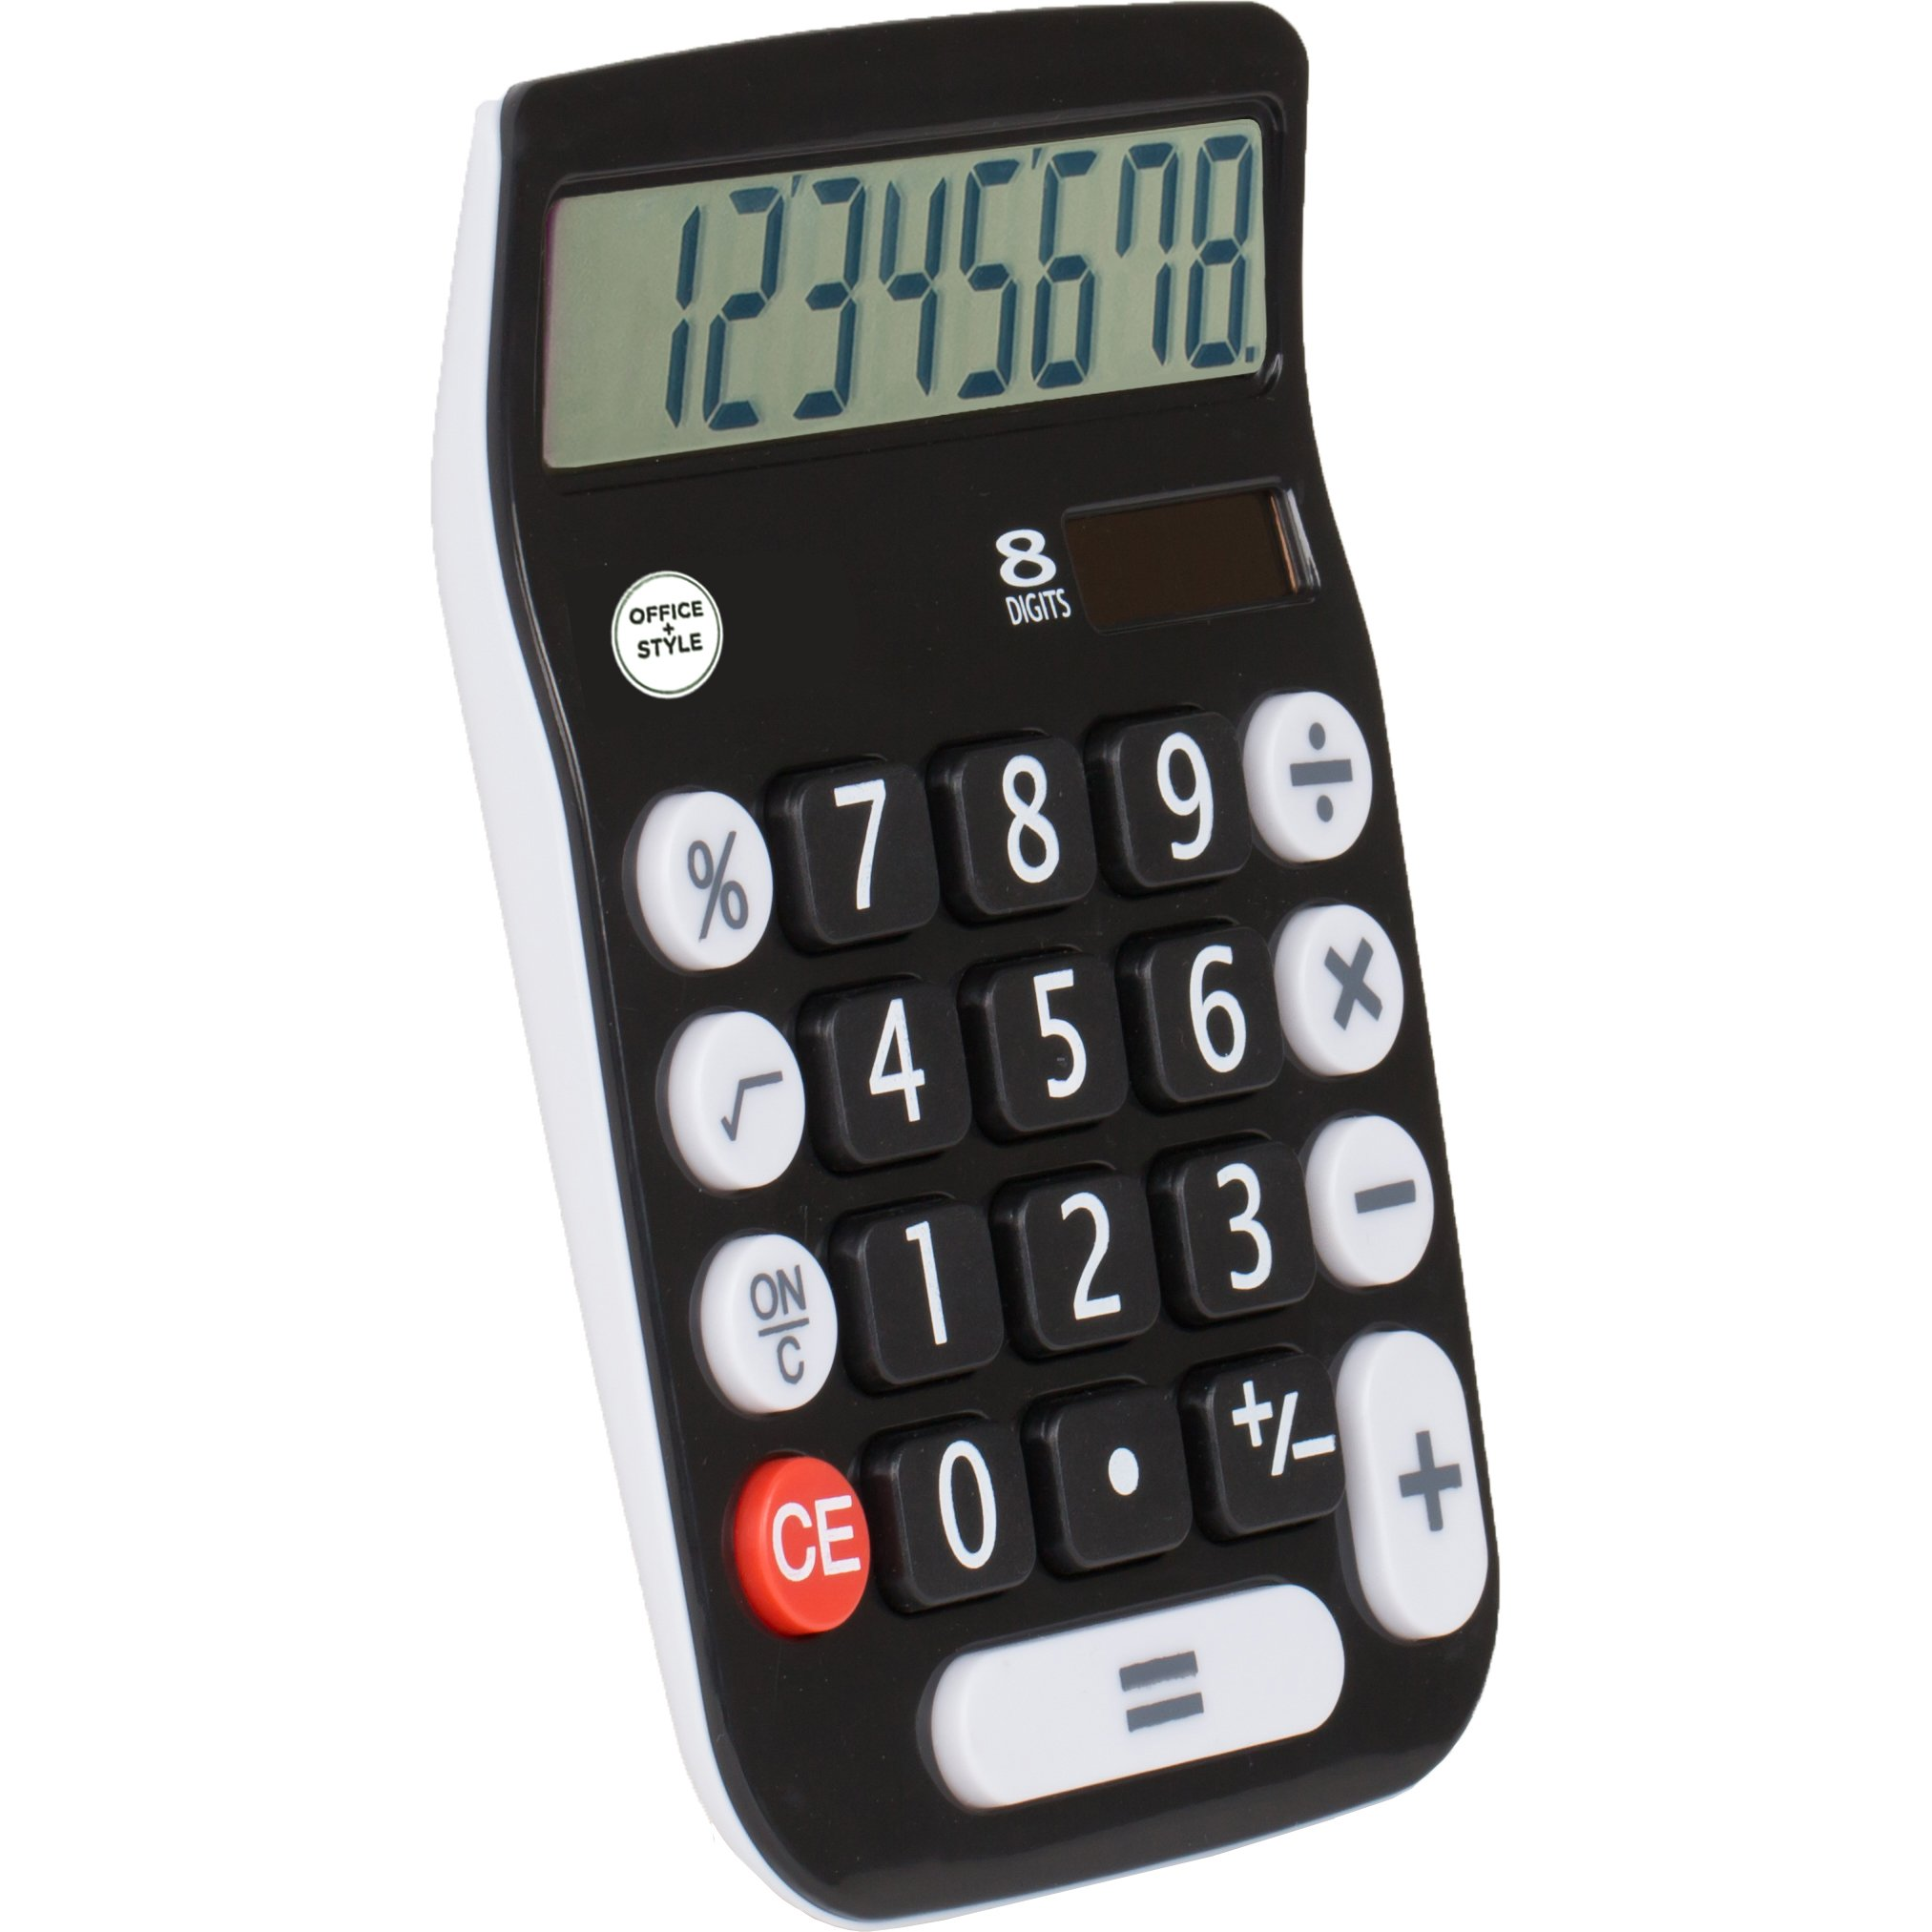 Office Style 8 Digit Dual Powered Desktop Calculator, Large LCD Display, Black (Pack Of 6) by Office Style (Image #2)